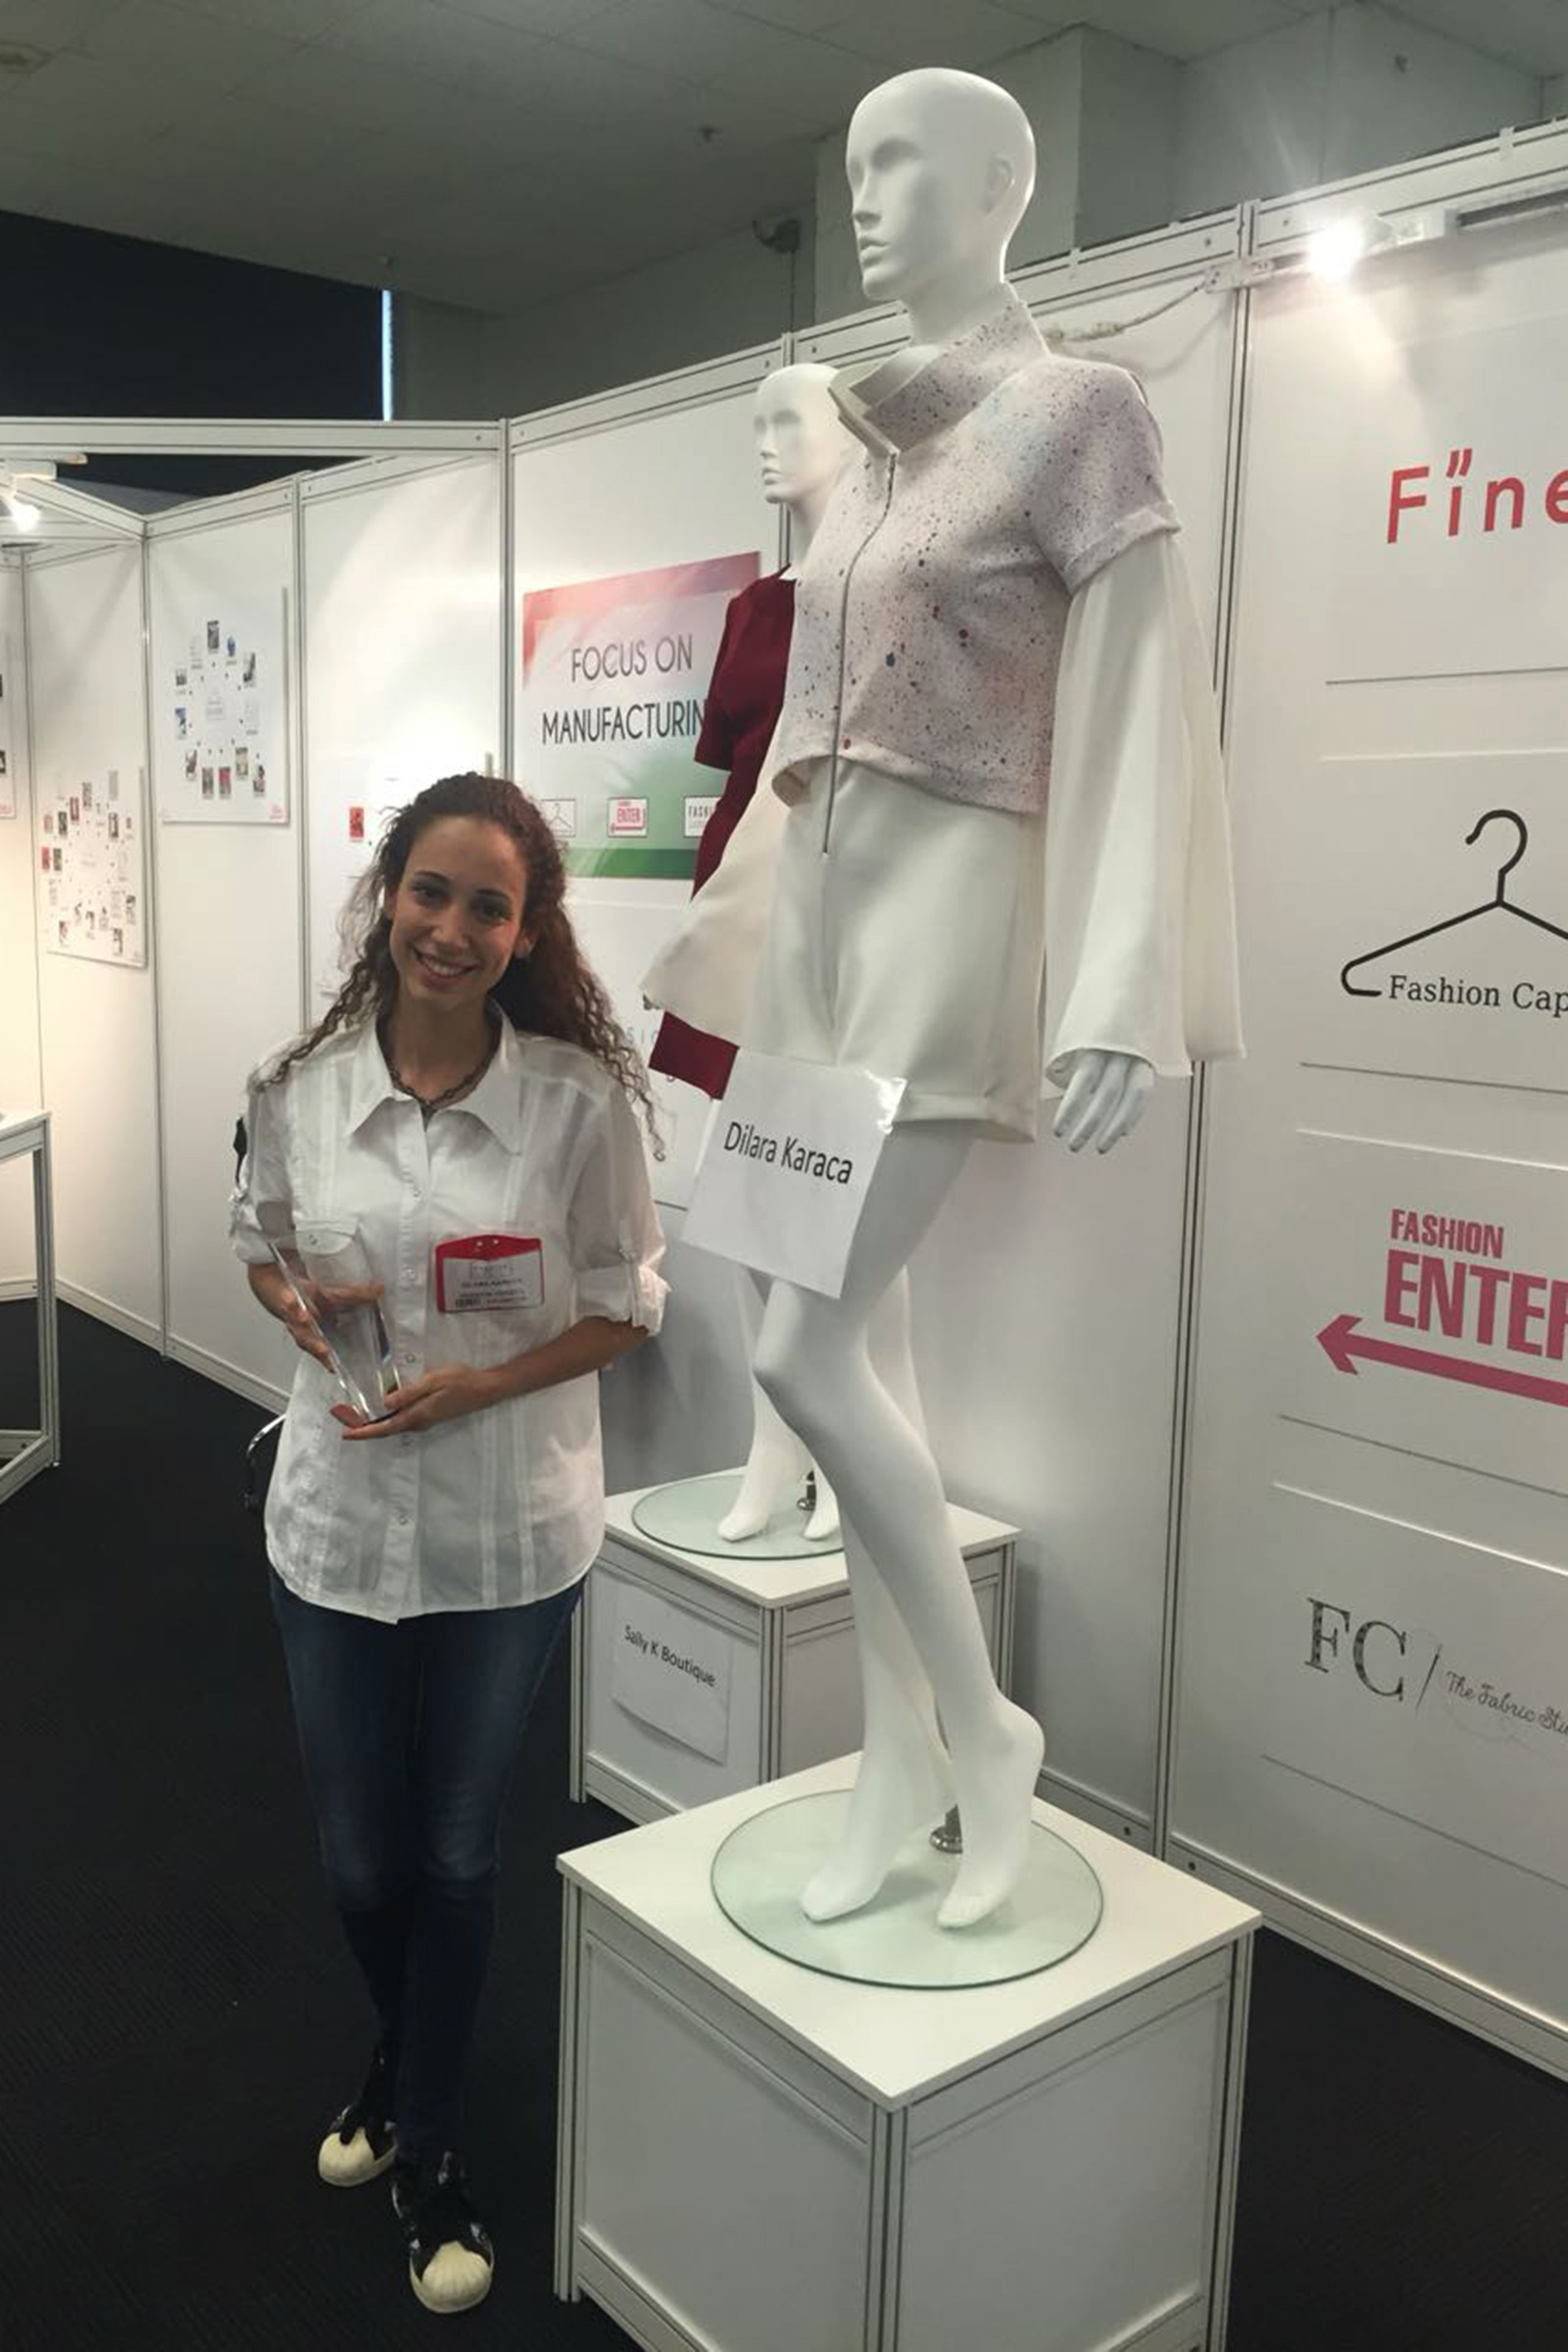 IZMIR GETS ANOTHER FIRST PRIZE IN FASHION